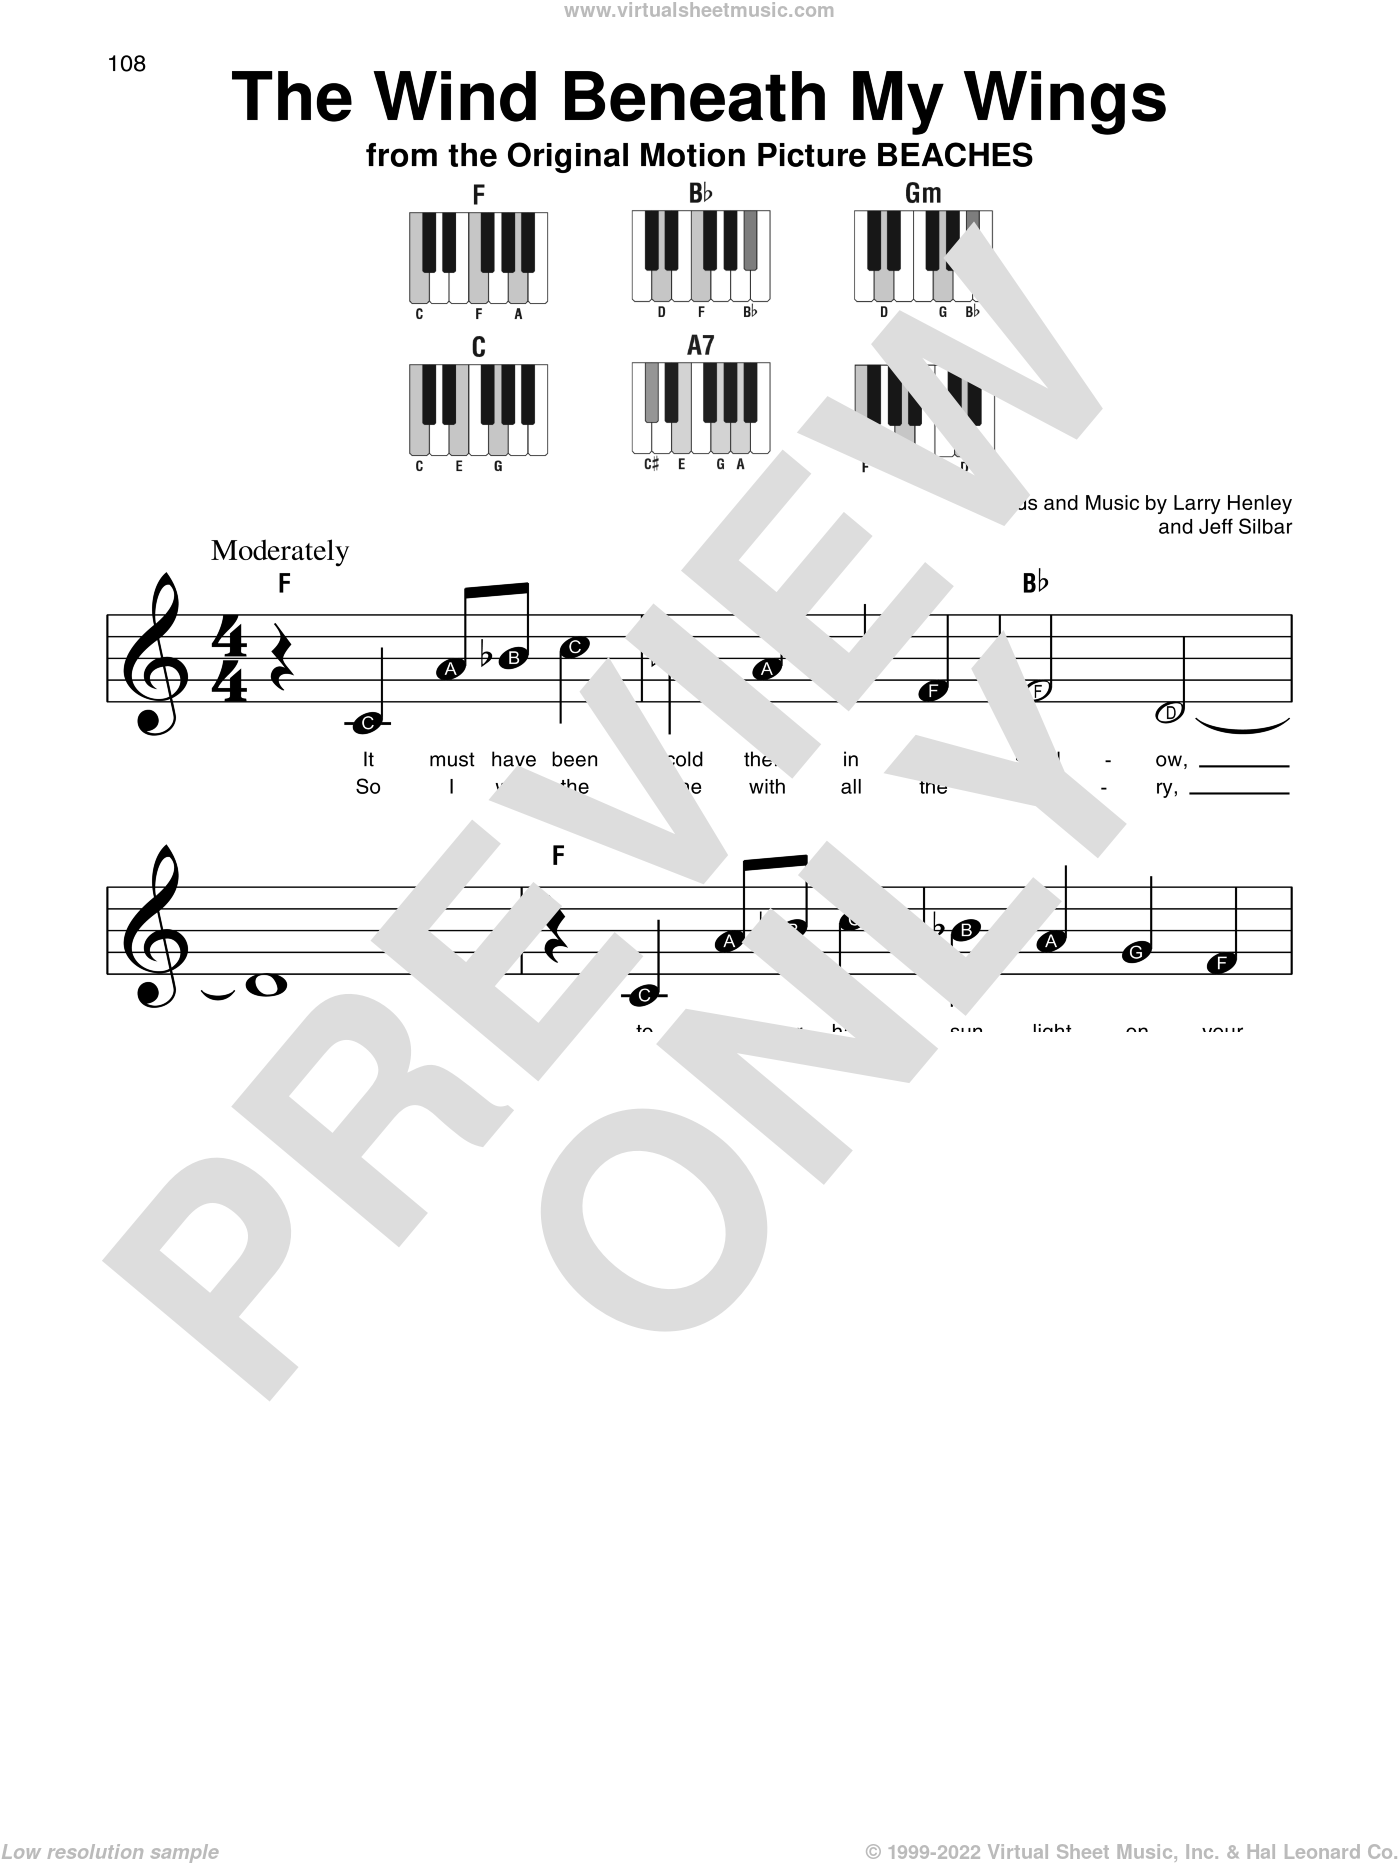 The Wind Beneath My Wings sheet music for piano solo by Bette Midler, Jeff Silbar and Larry Henley, beginner skill level